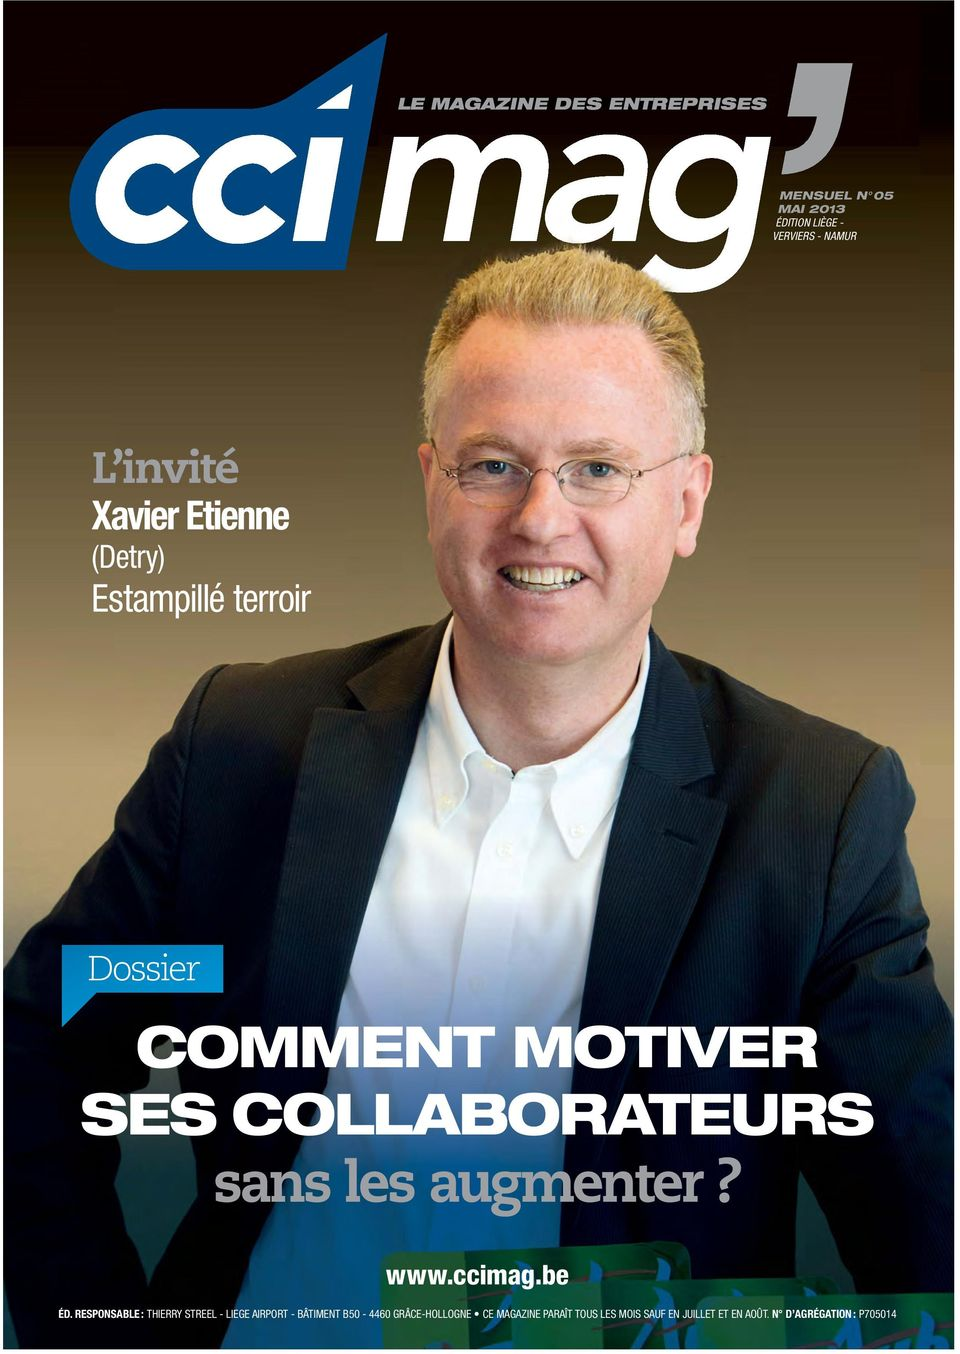 COLLABORATEURS sans les augmenter? www.ccimag.be ÉD.